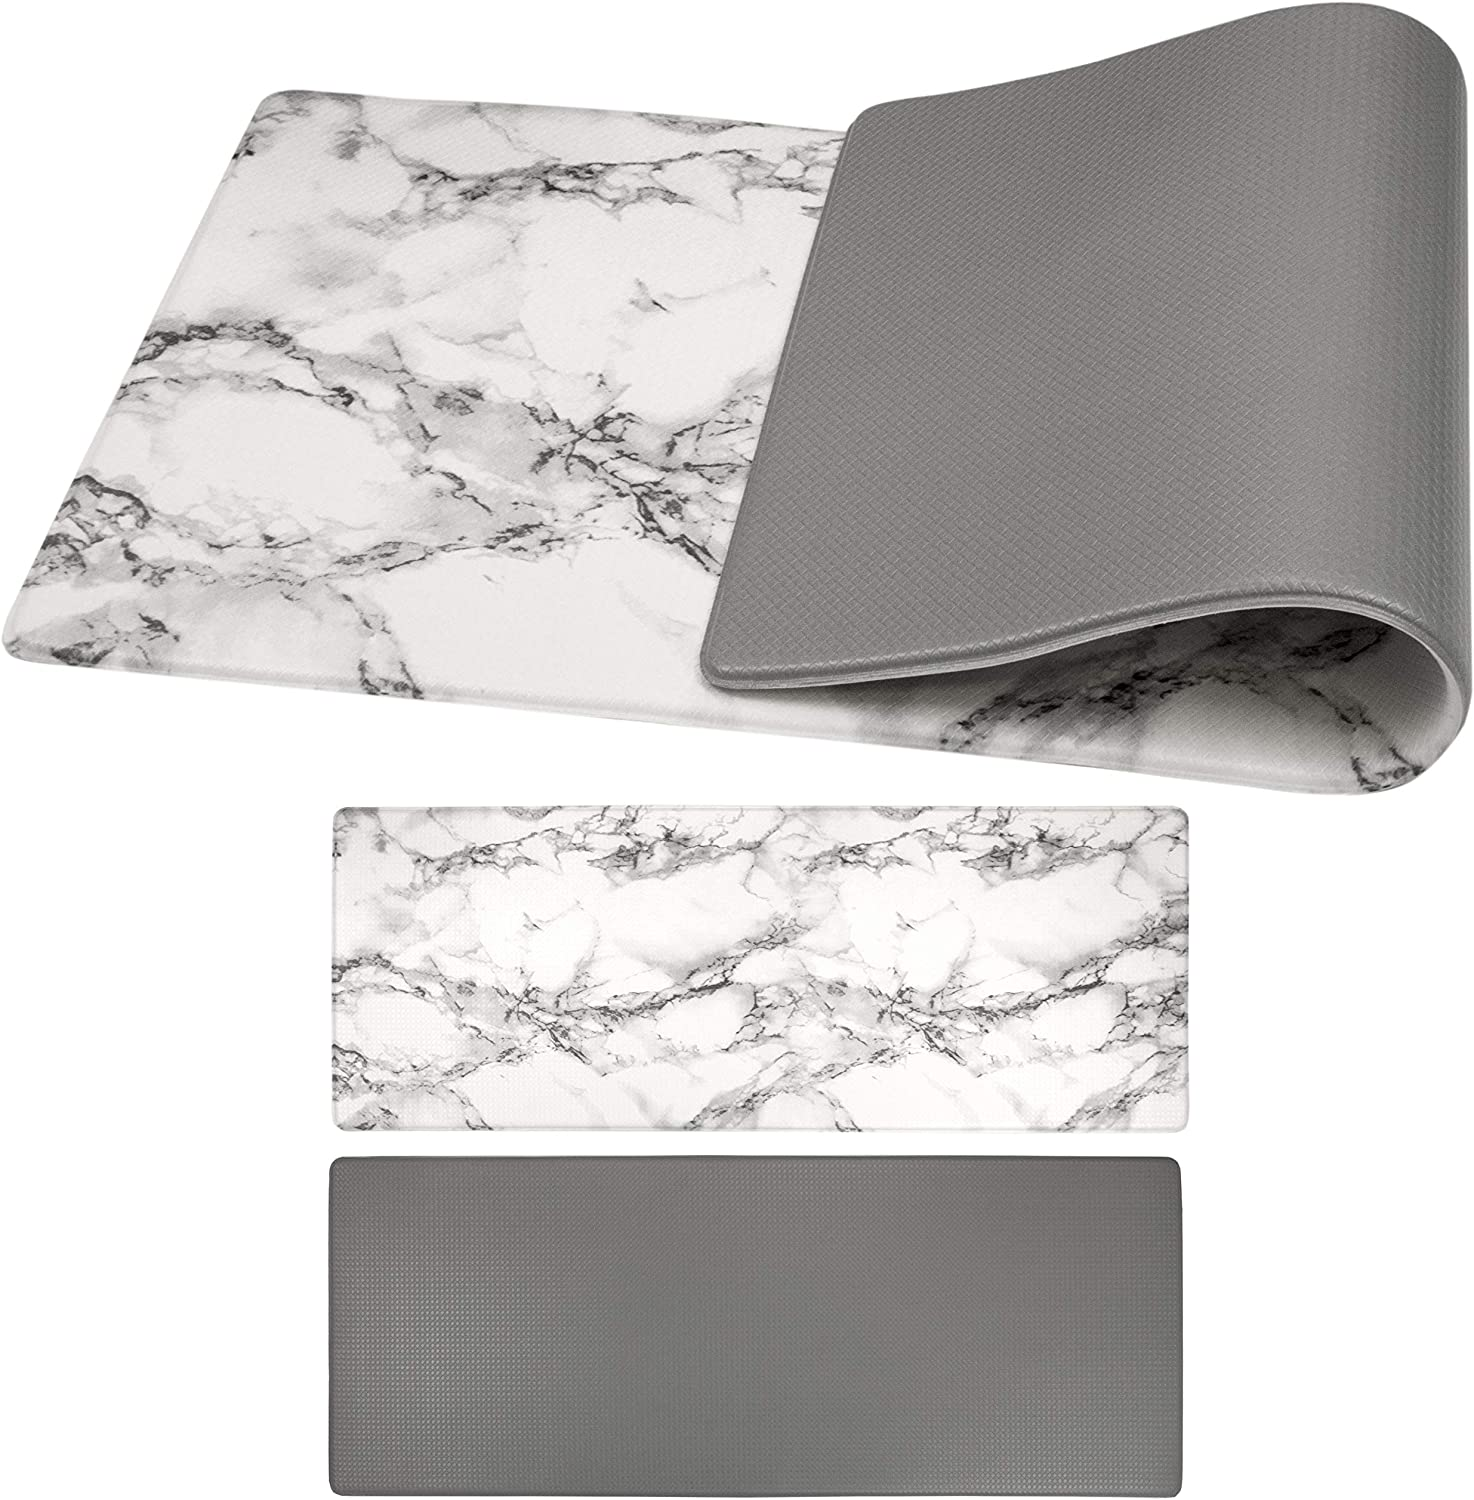 OPUX Anti Fatigue Comfort Floor Mat | Standing Mat for Kitchen Home Office Desk | Reversible Decorative Ergonomically Engineered Rug | Non-Slip Waterproof Easy to Clean | Marble/Gray, 47.2